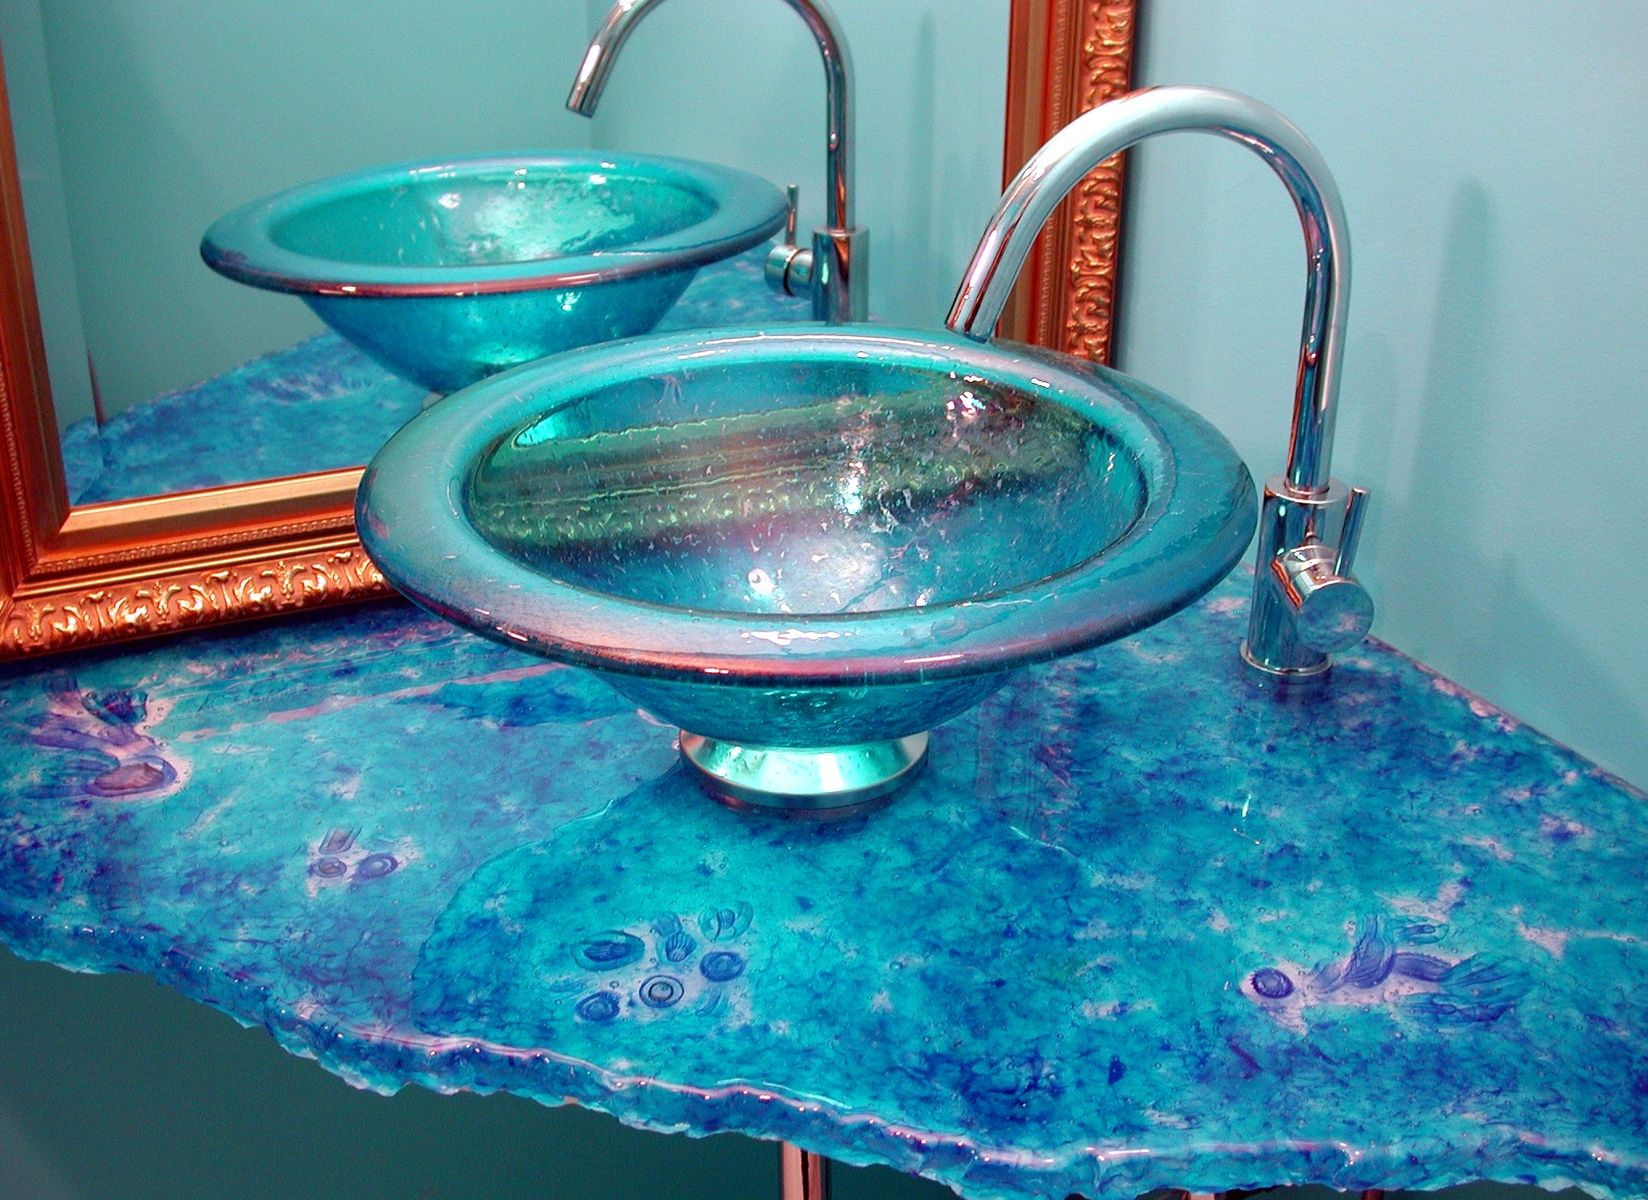 Bathroom Sinks Jamaica buy a hand crafted jamaica blue sink and cast cane counter, made